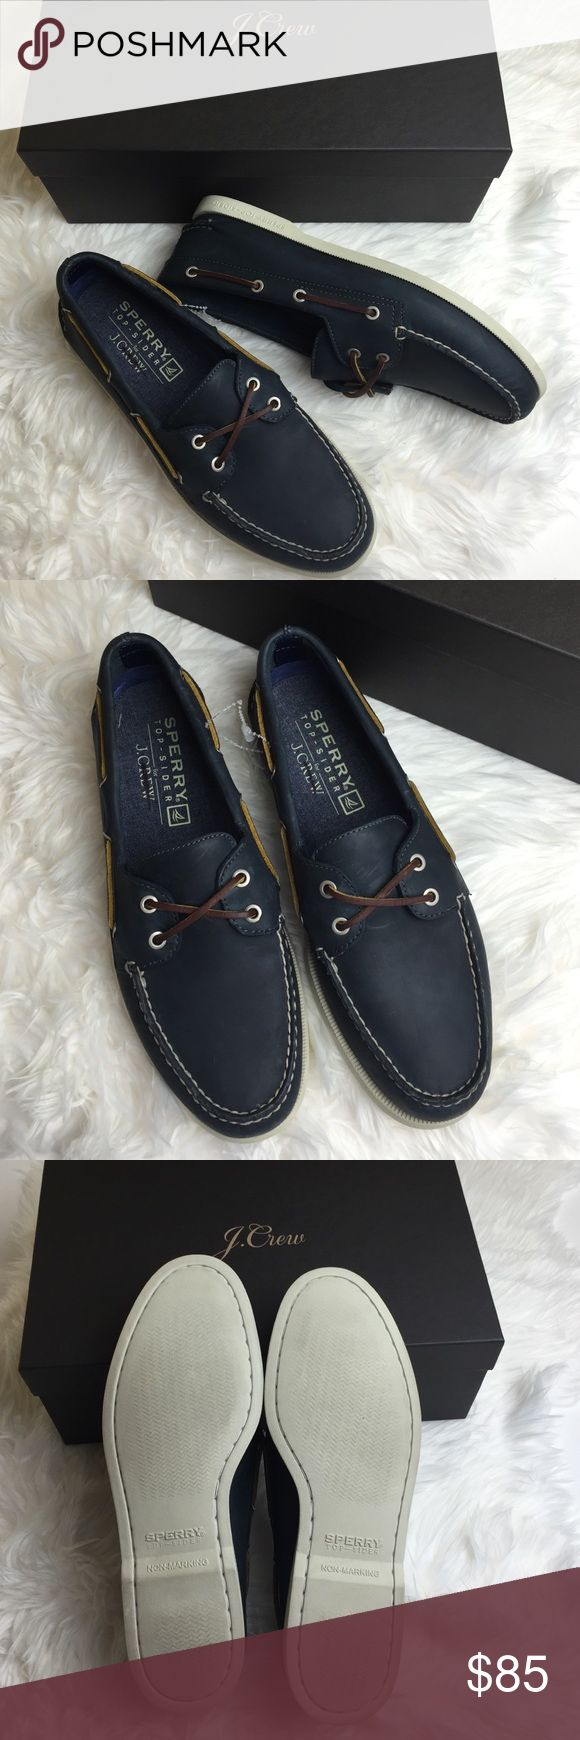 NWT sperry for j.crew mens classic boat shoes Comes with Jcrew box,tag crossed to prevent return  original boat shoes are back and better than ever,custom-colored each pair and partially lined them in our famous cotton chambray for one-of-a-kind shoes that are only available at J.Crew. These feature nonskid treads and top-quality leather with a perfectly worn-in finish. White contrast hand stitching. Rust-proof nickel eyelets with Sperry logo. Exclusive off-white rubber sole with grosgrain…